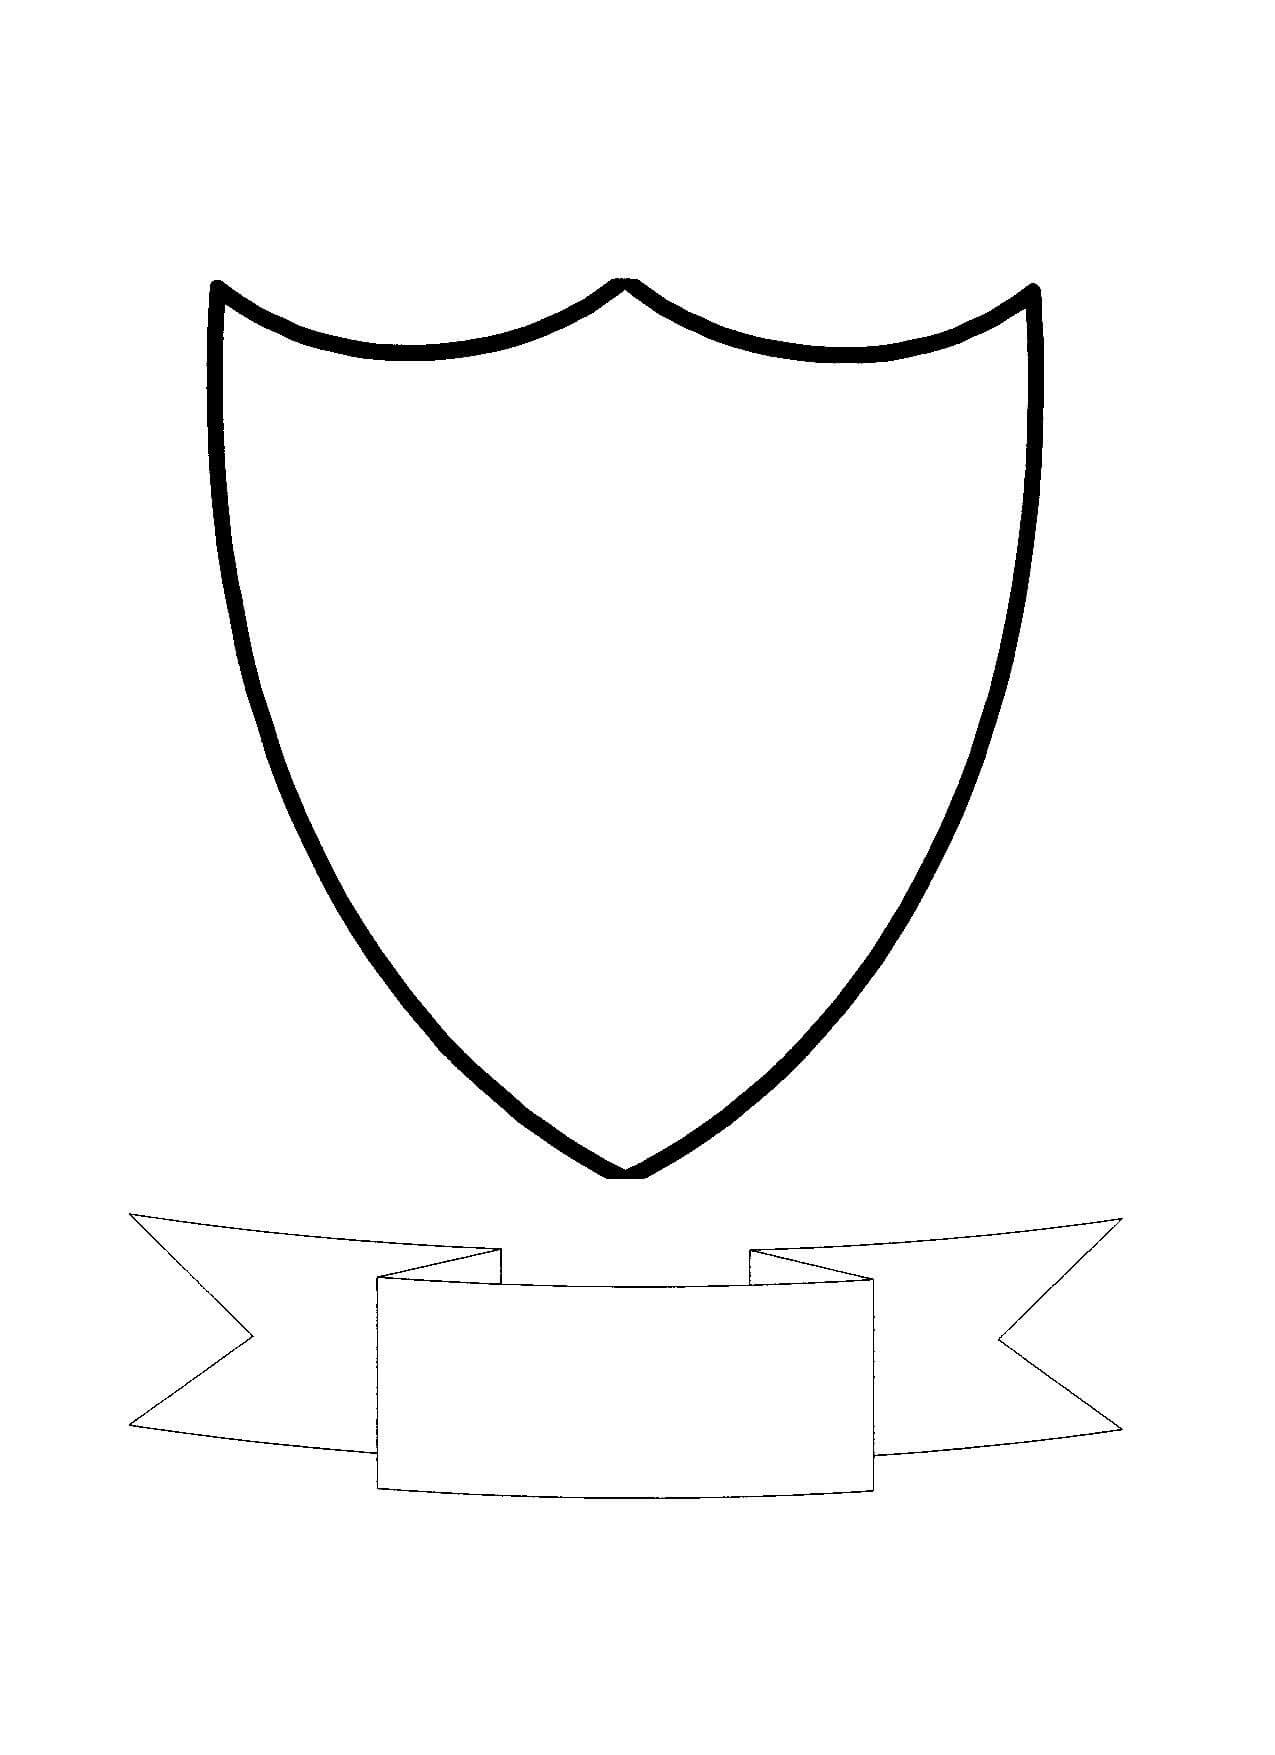 Free Shield Template, Download Free Clip Art, Free Clip Art Pertaining To Blank Shield Template Printable